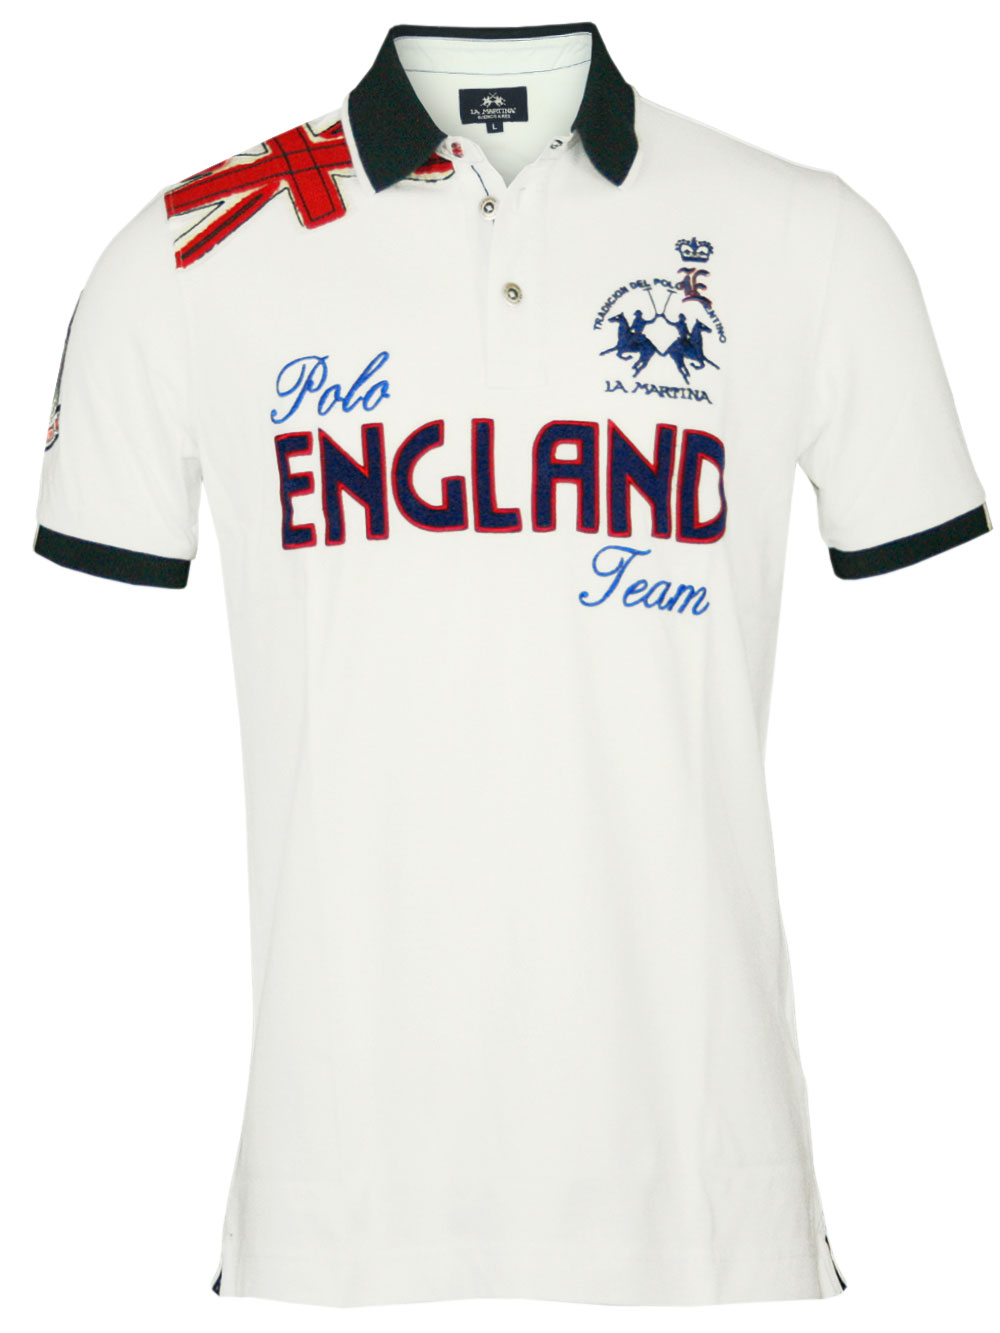 edles la martina herren polo shirt england in weiss m. Black Bedroom Furniture Sets. Home Design Ideas